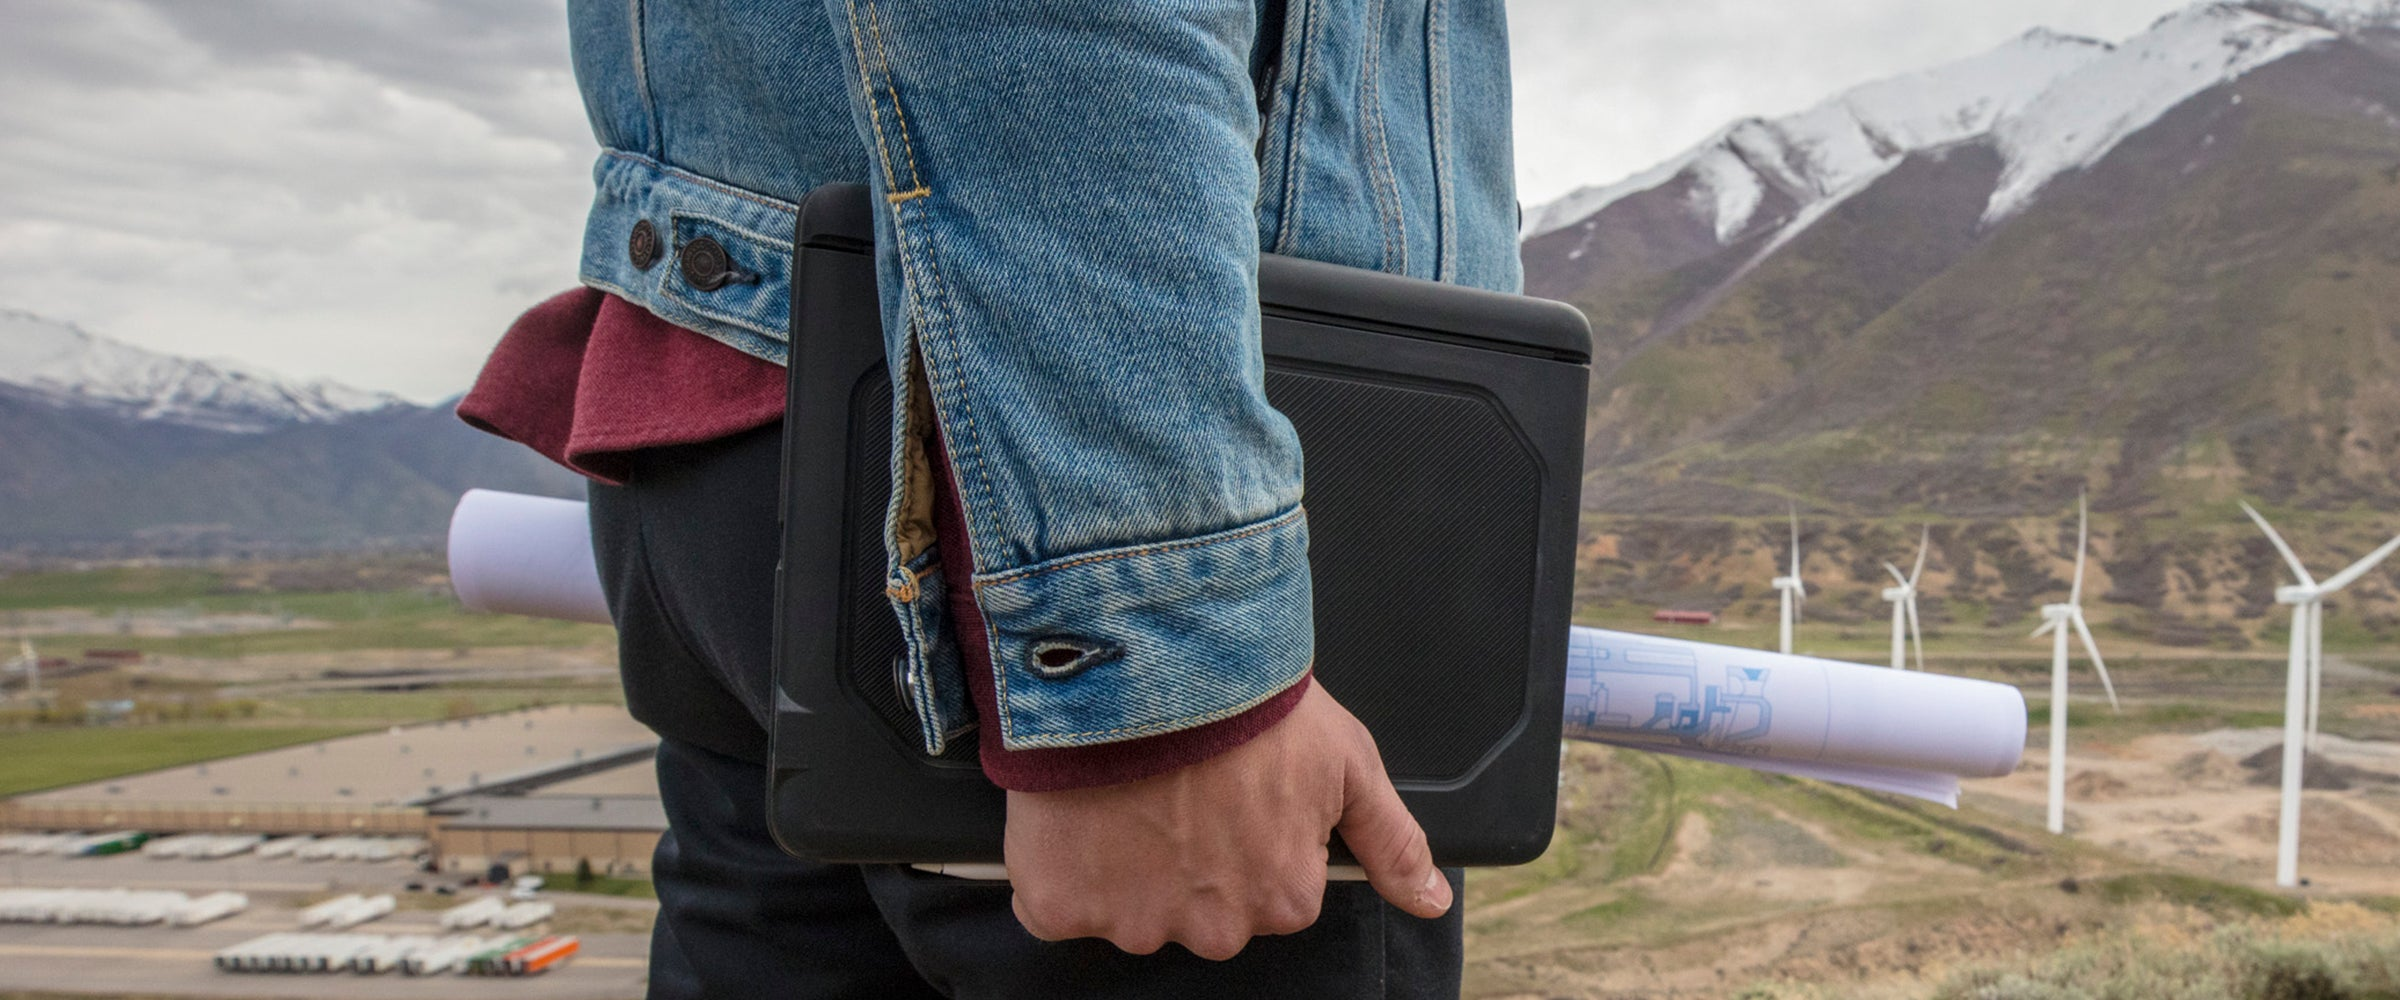 Man holding an iPad with a Rugged Book case